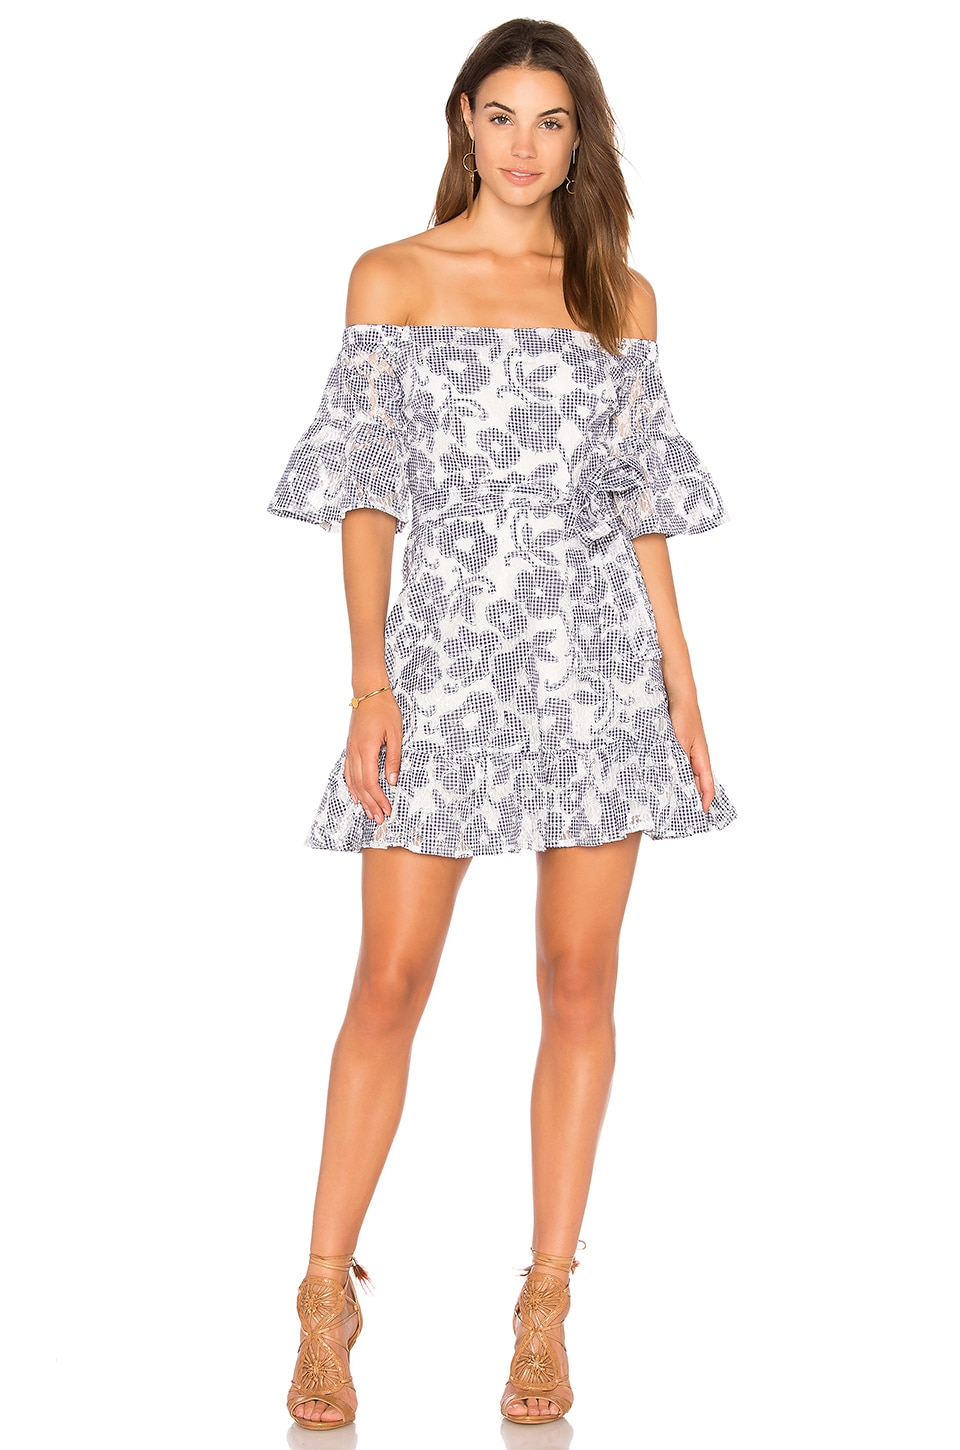 J.O.A. Floral-Lace Off The Shoulder Dress in Navy & White